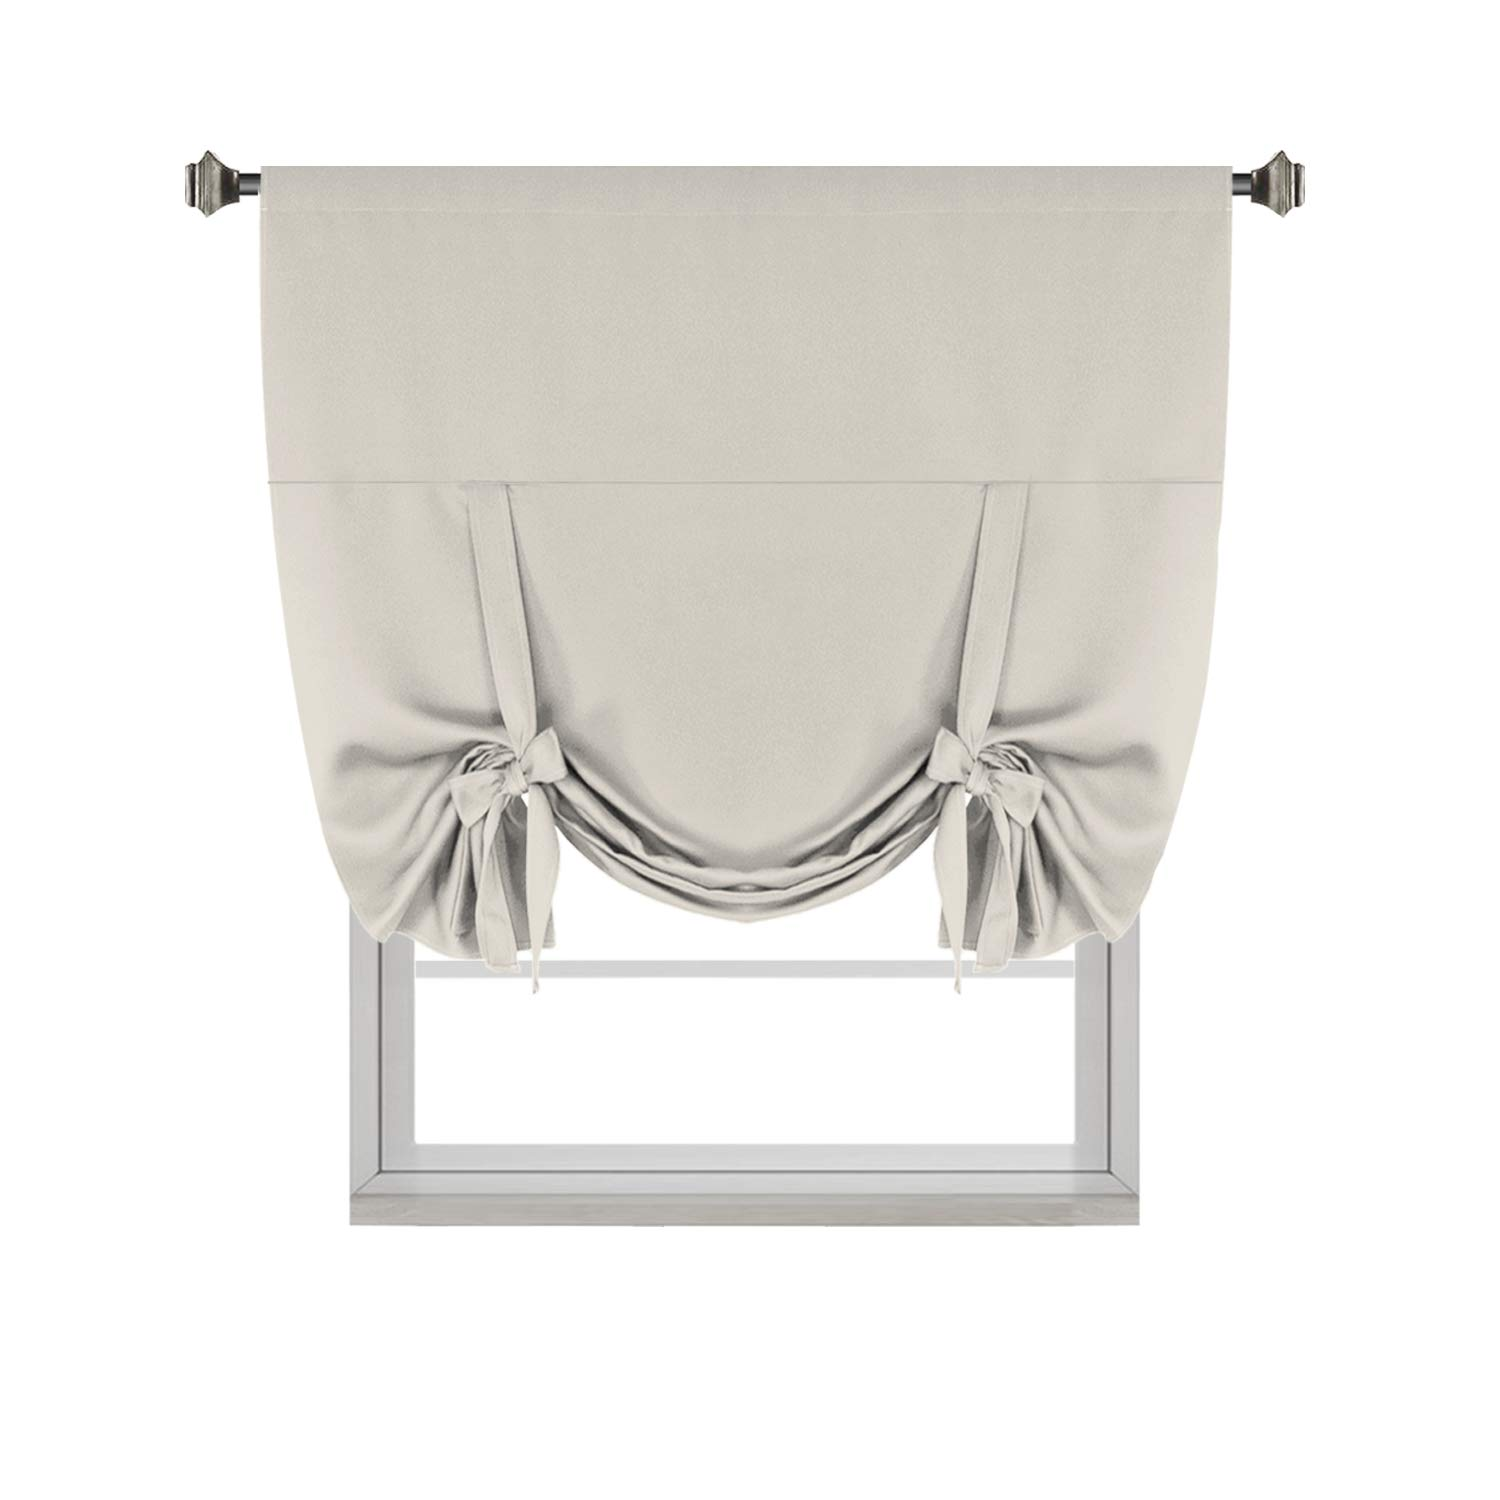 H.VERSAILTEX Thermal Insulated Blackout Curtain Tie Up Window Shade (Rod Pocket Panel) - 42'' Wide by 63'' Long - Cream